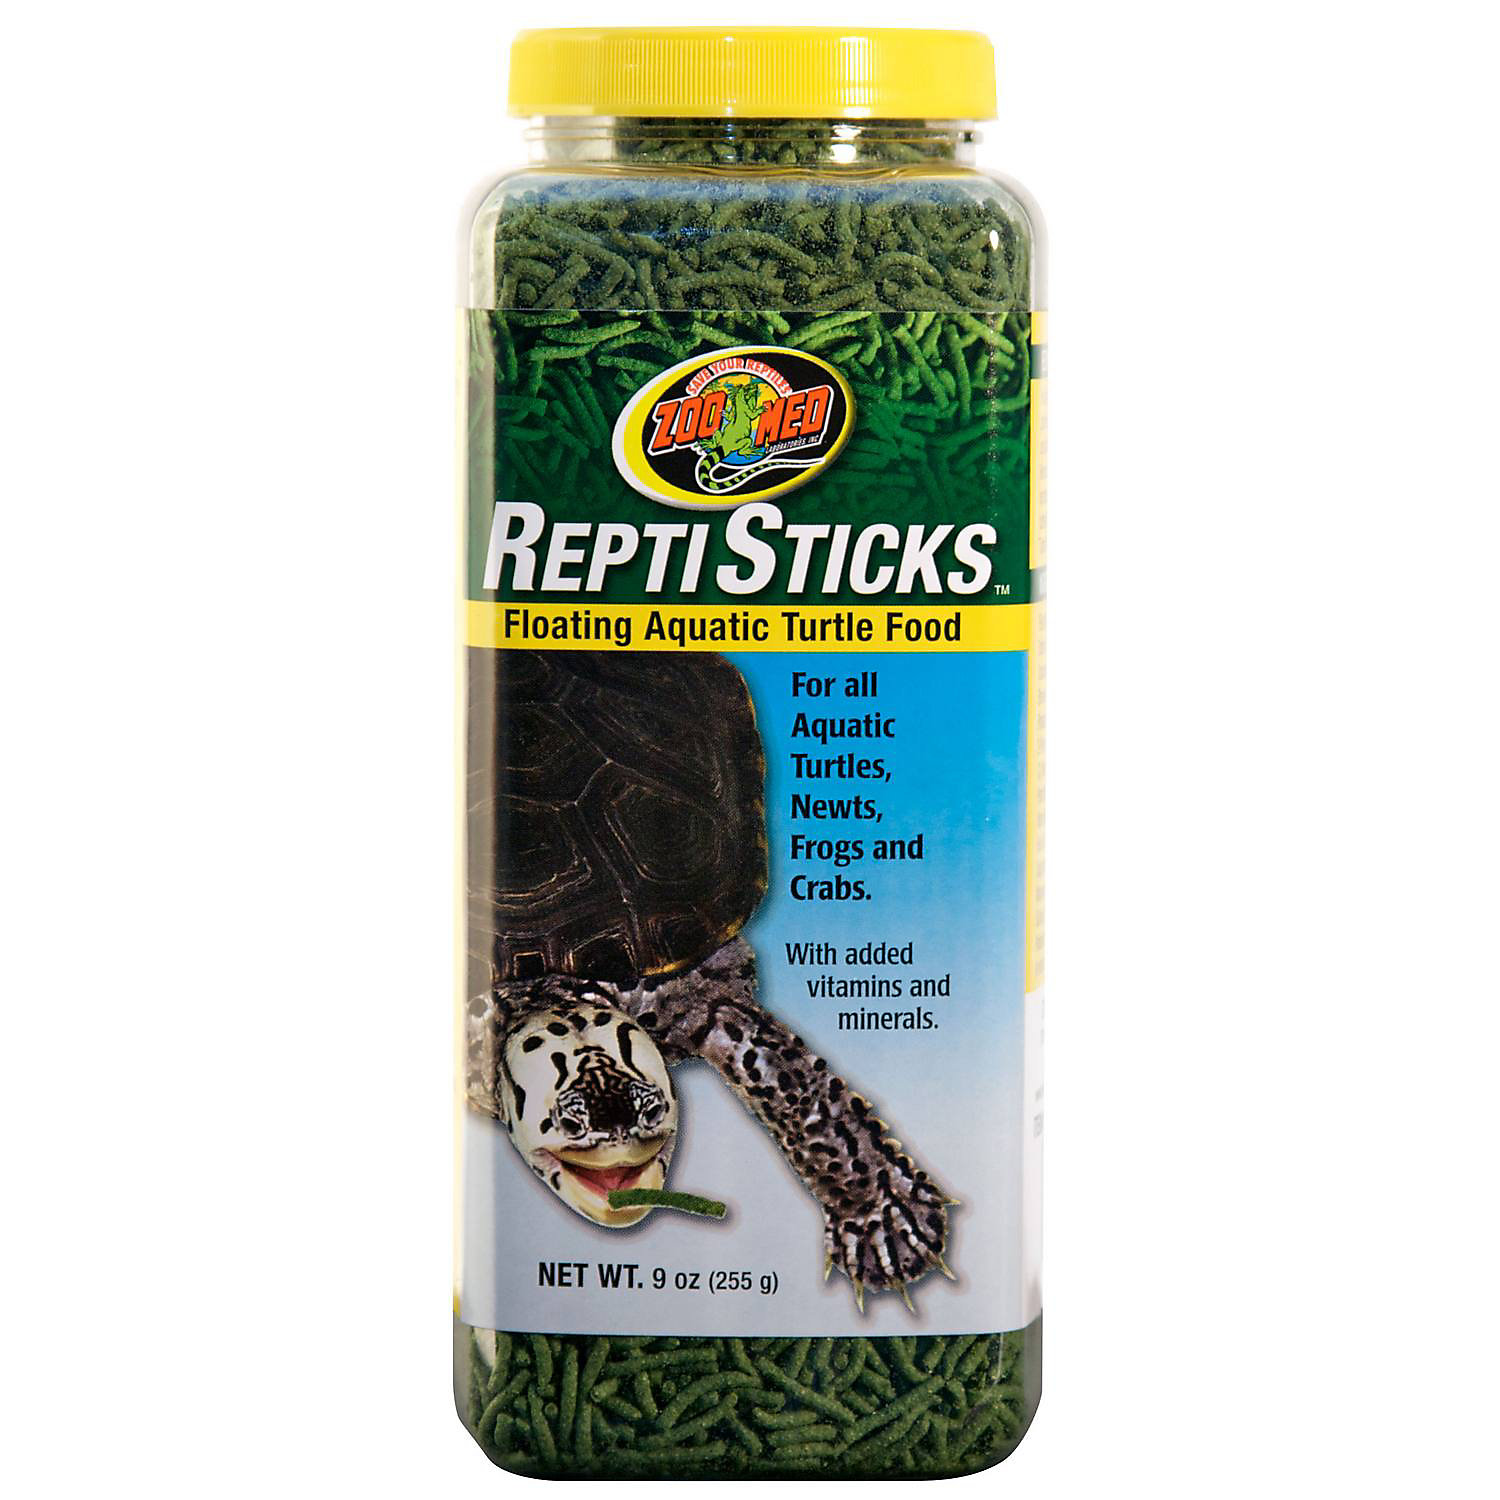 Zoo Med Reptisticks Floating Aquatic Turtle Food 9 Oz.